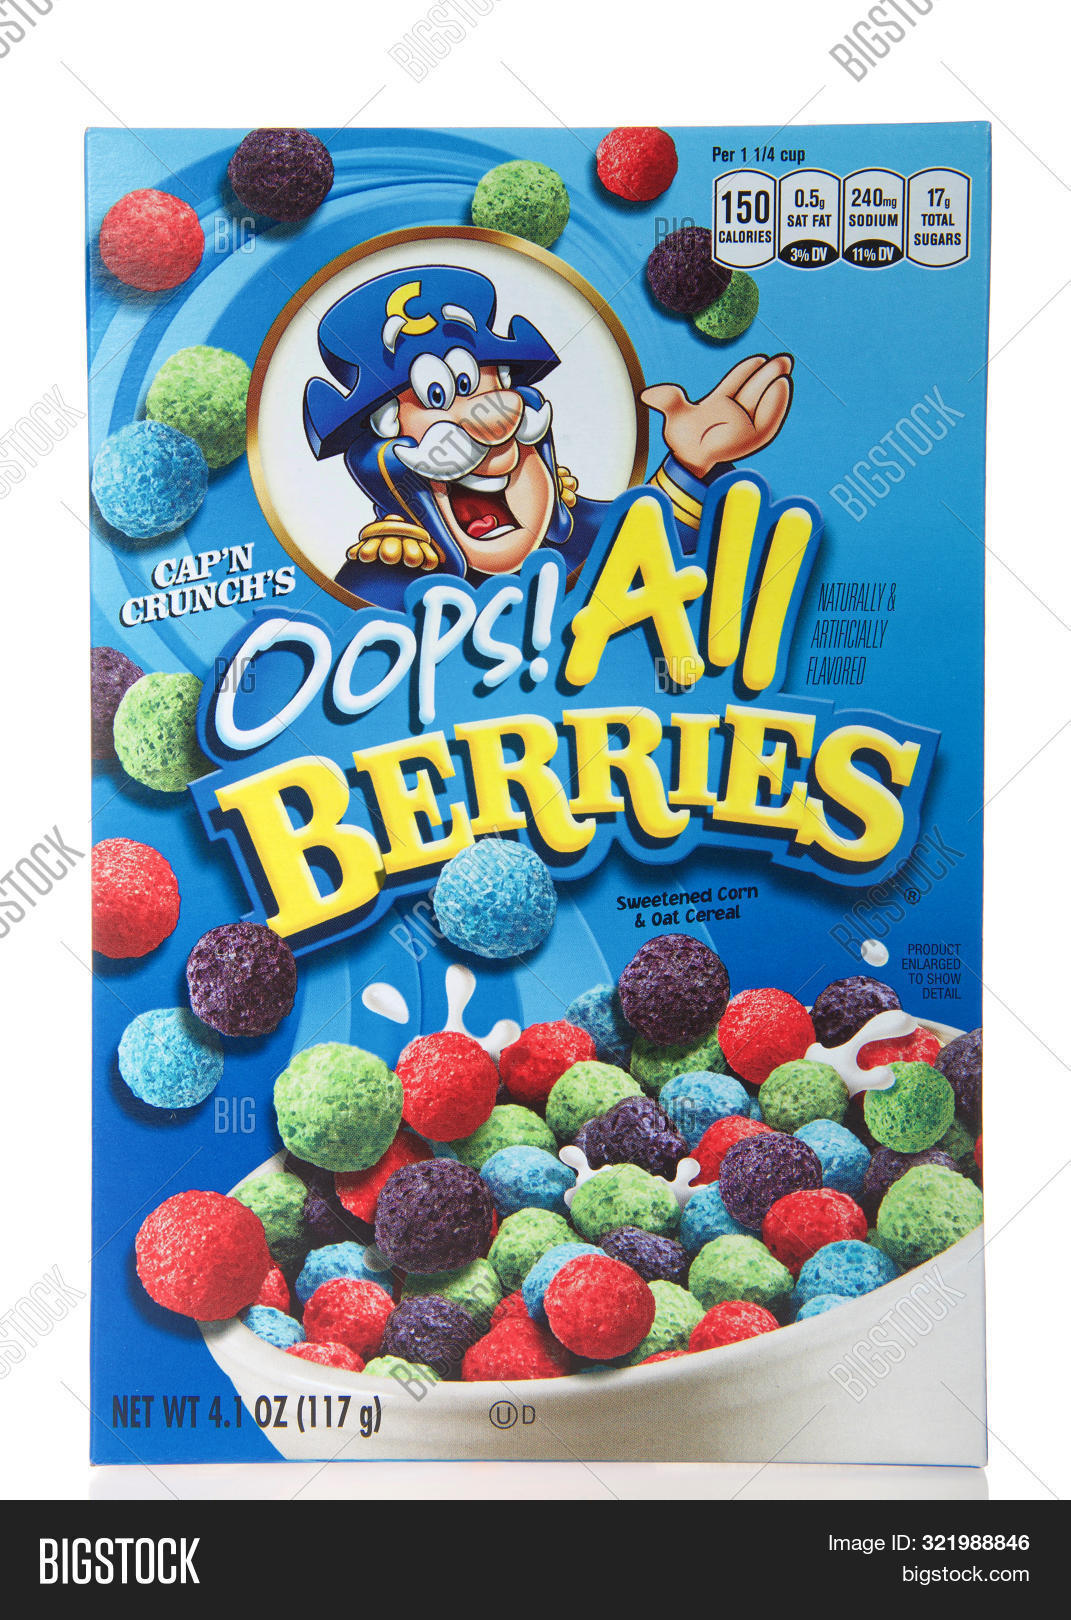 Oops All Oops All Berries : Flash forward to today (almost 20 years after this mistake was first made) and we find the cap'n still trying to market this cereal as an accident.